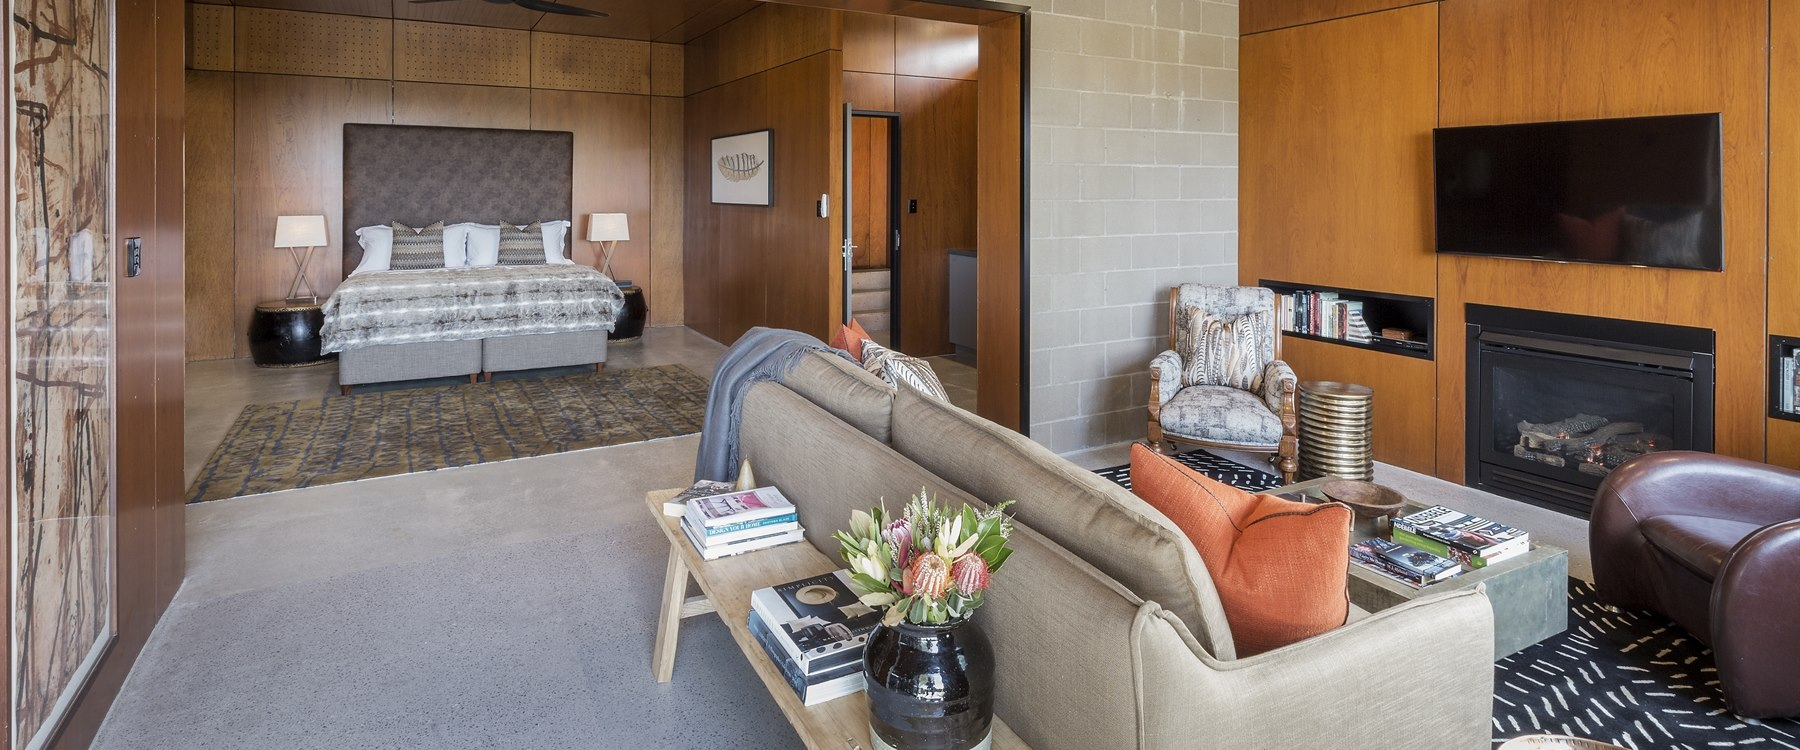 Lodge suite at Spicers Sangoma Retreat